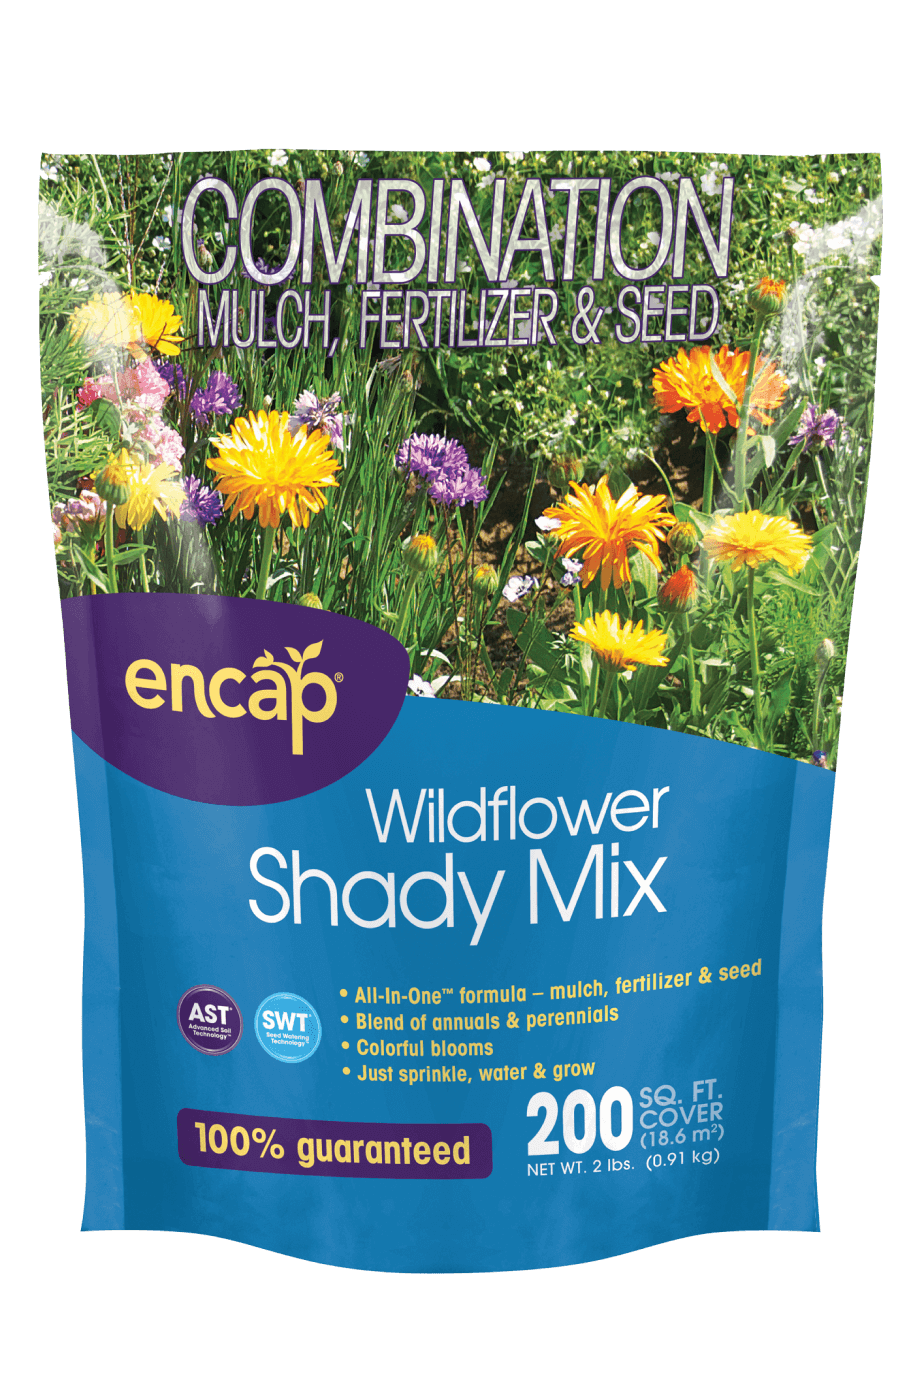 Wildflower Shady Mix Package